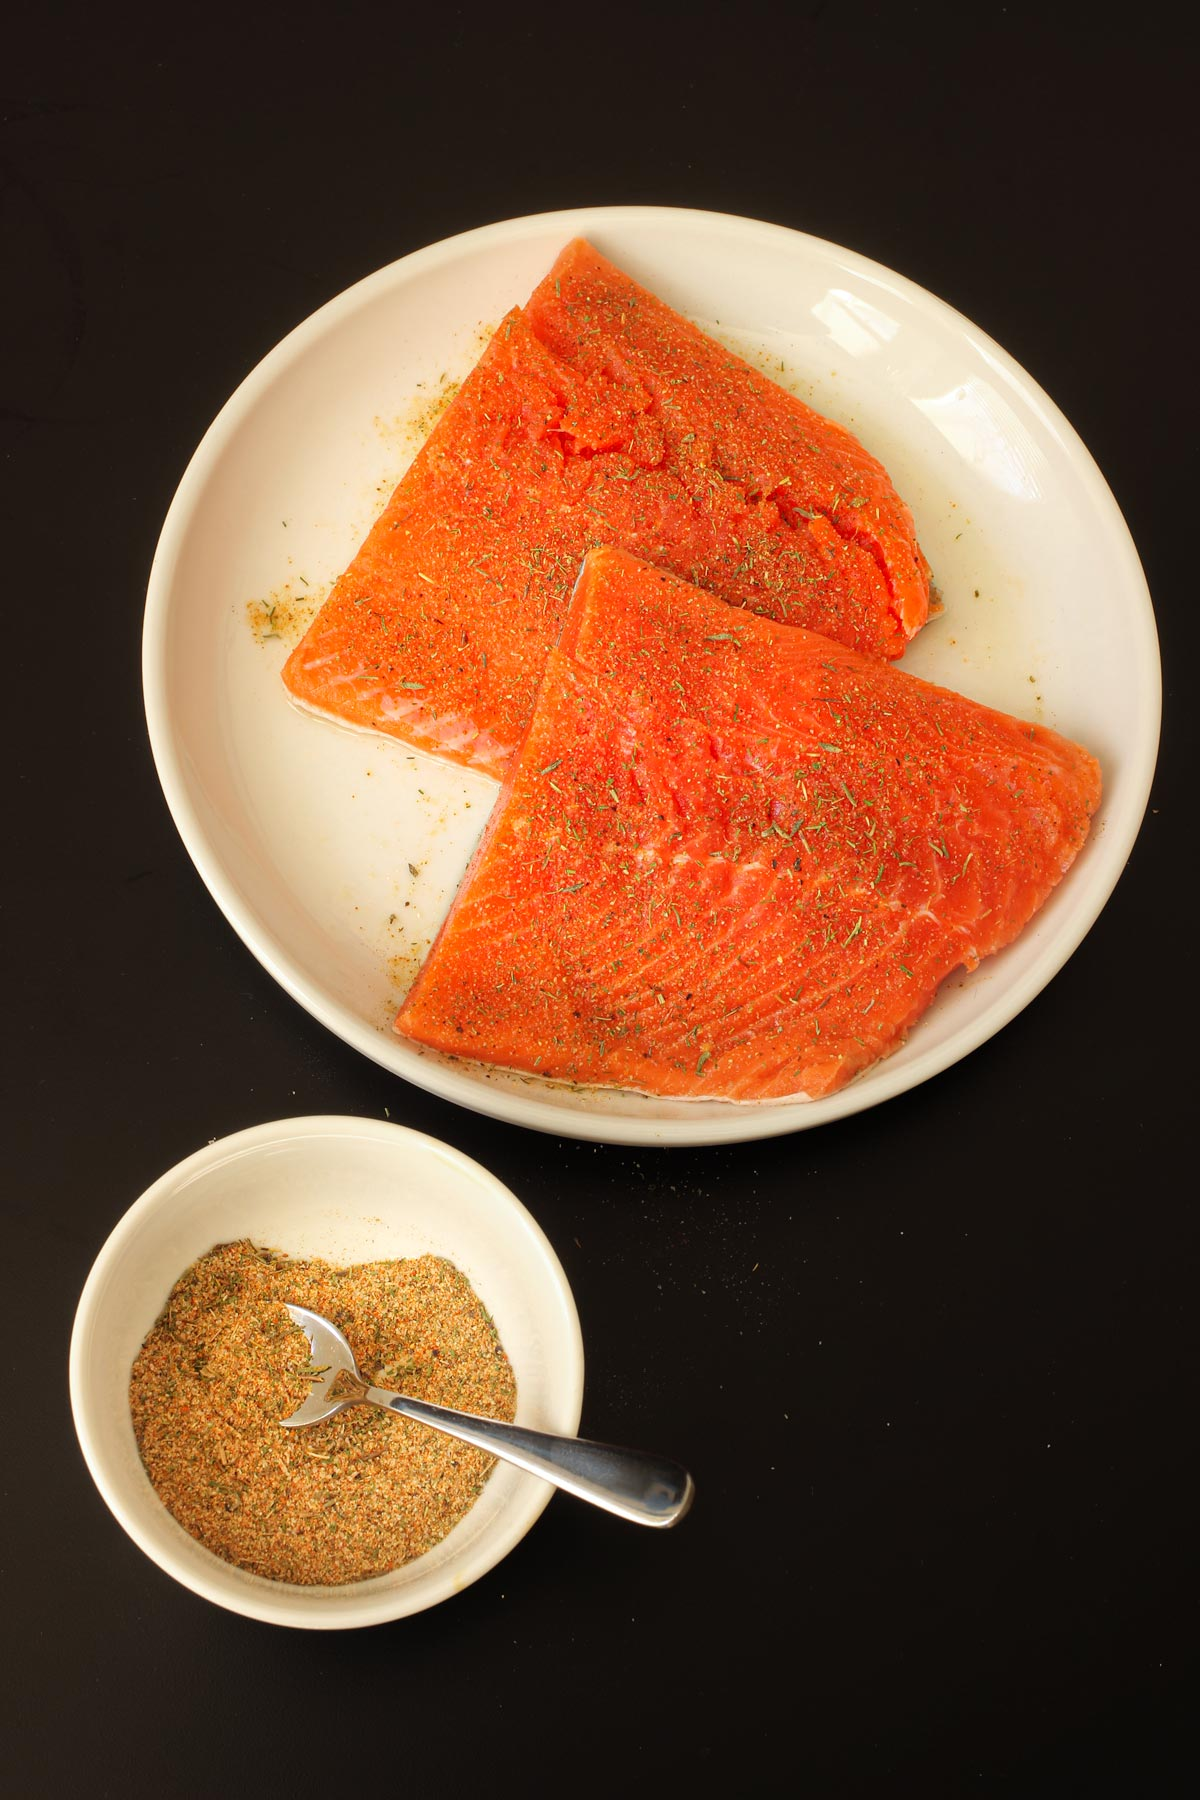 fish seasoning in a small dish next to a plate of salmon pieces.